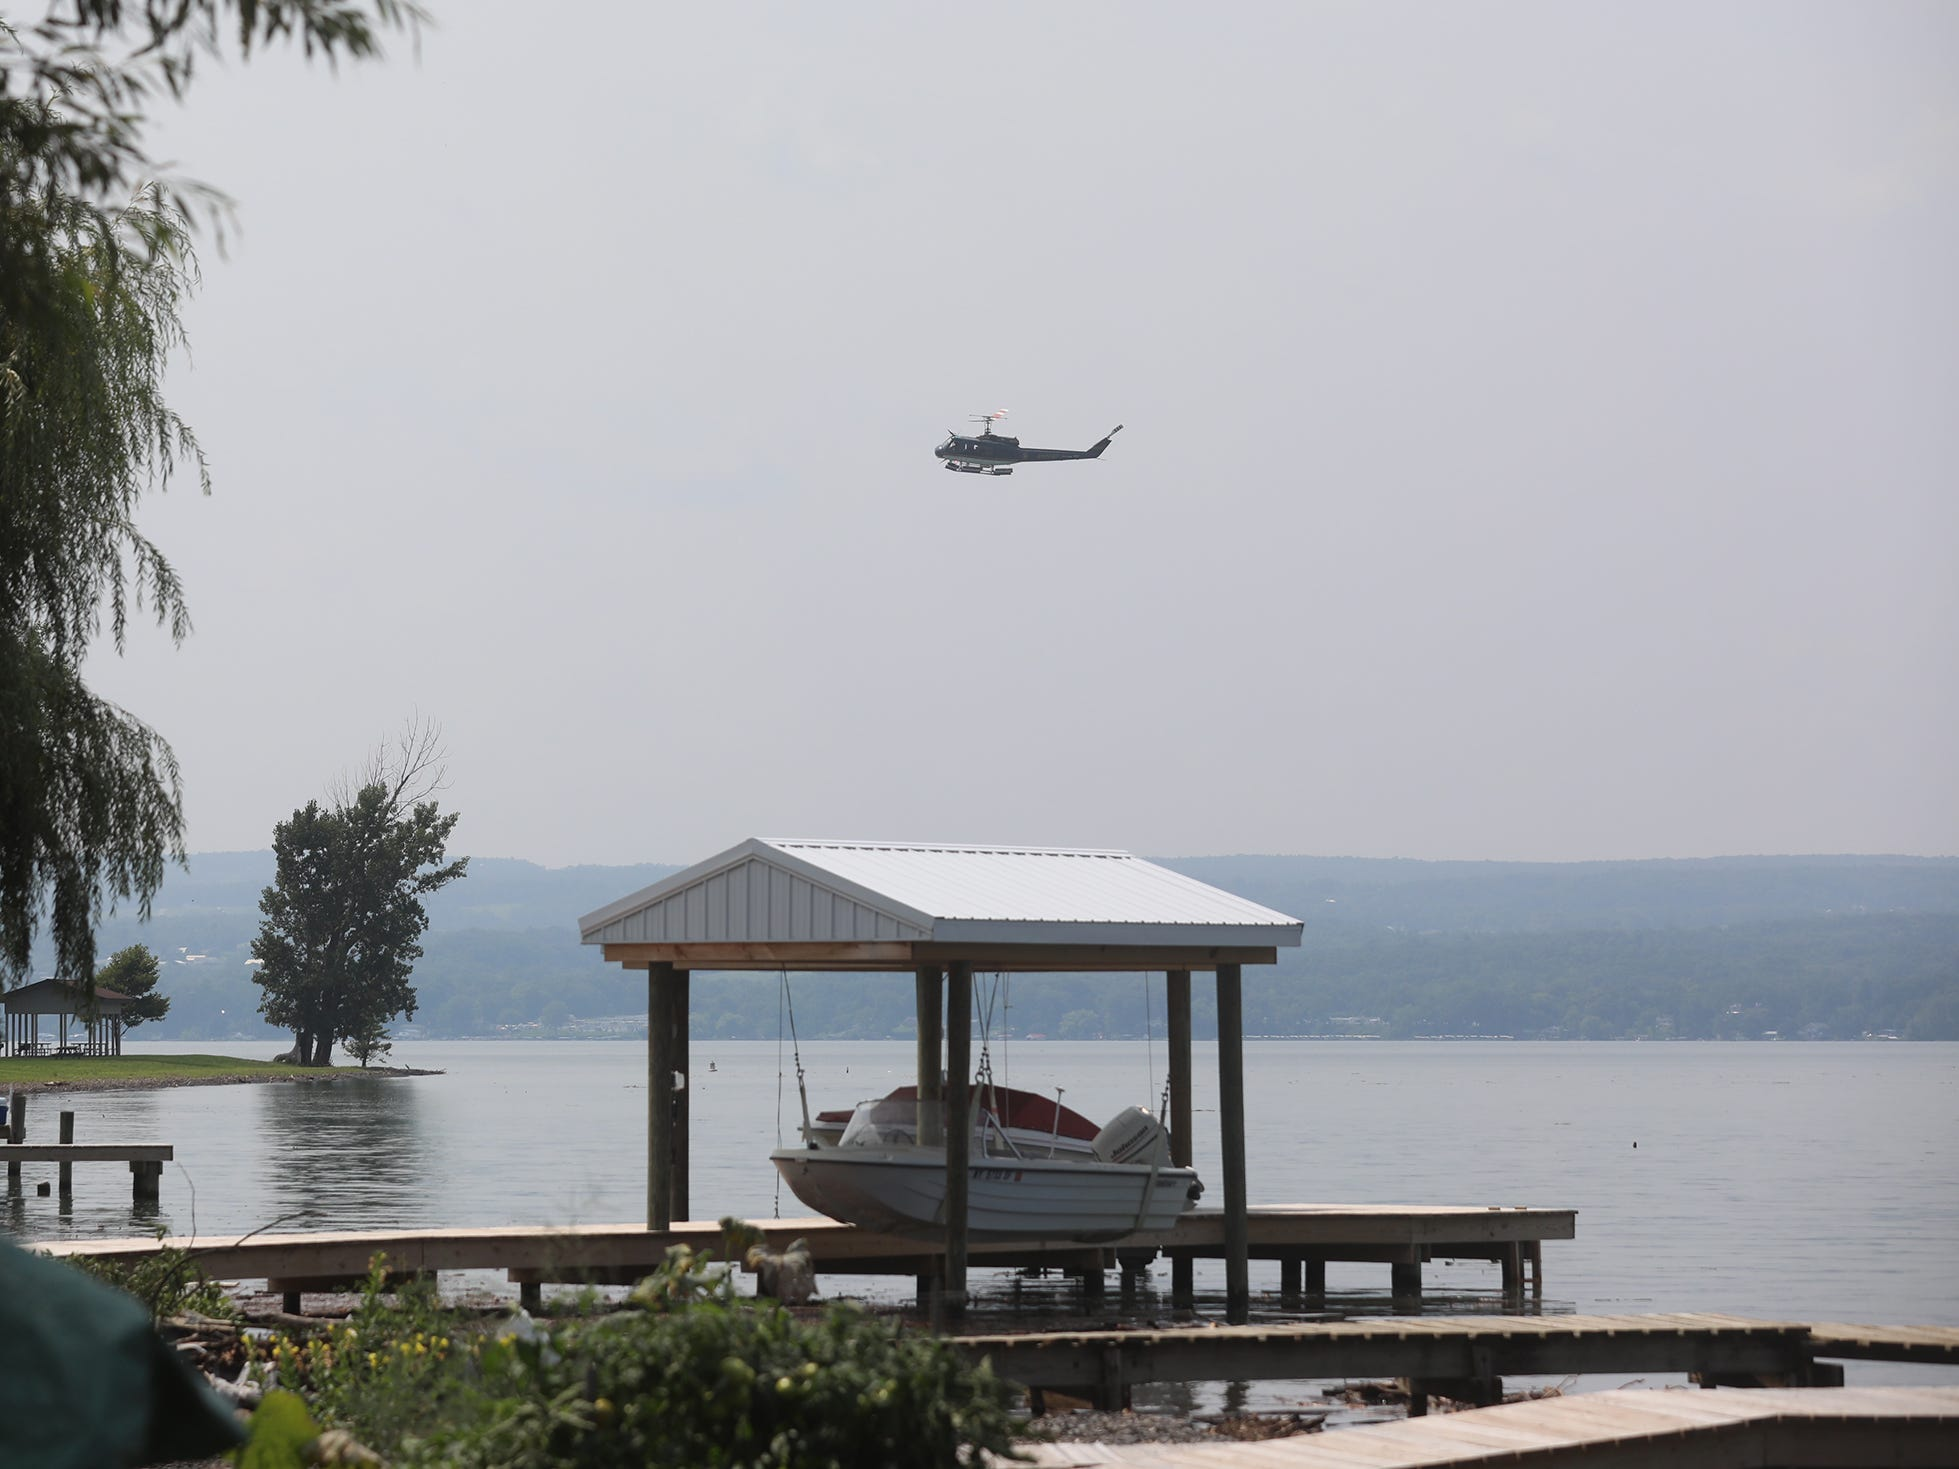 A NY State Police helicopter heads into Lodi State Marine Park to land.  The area of Lodi Point had limited access early Thursday morning because of downed power lines.